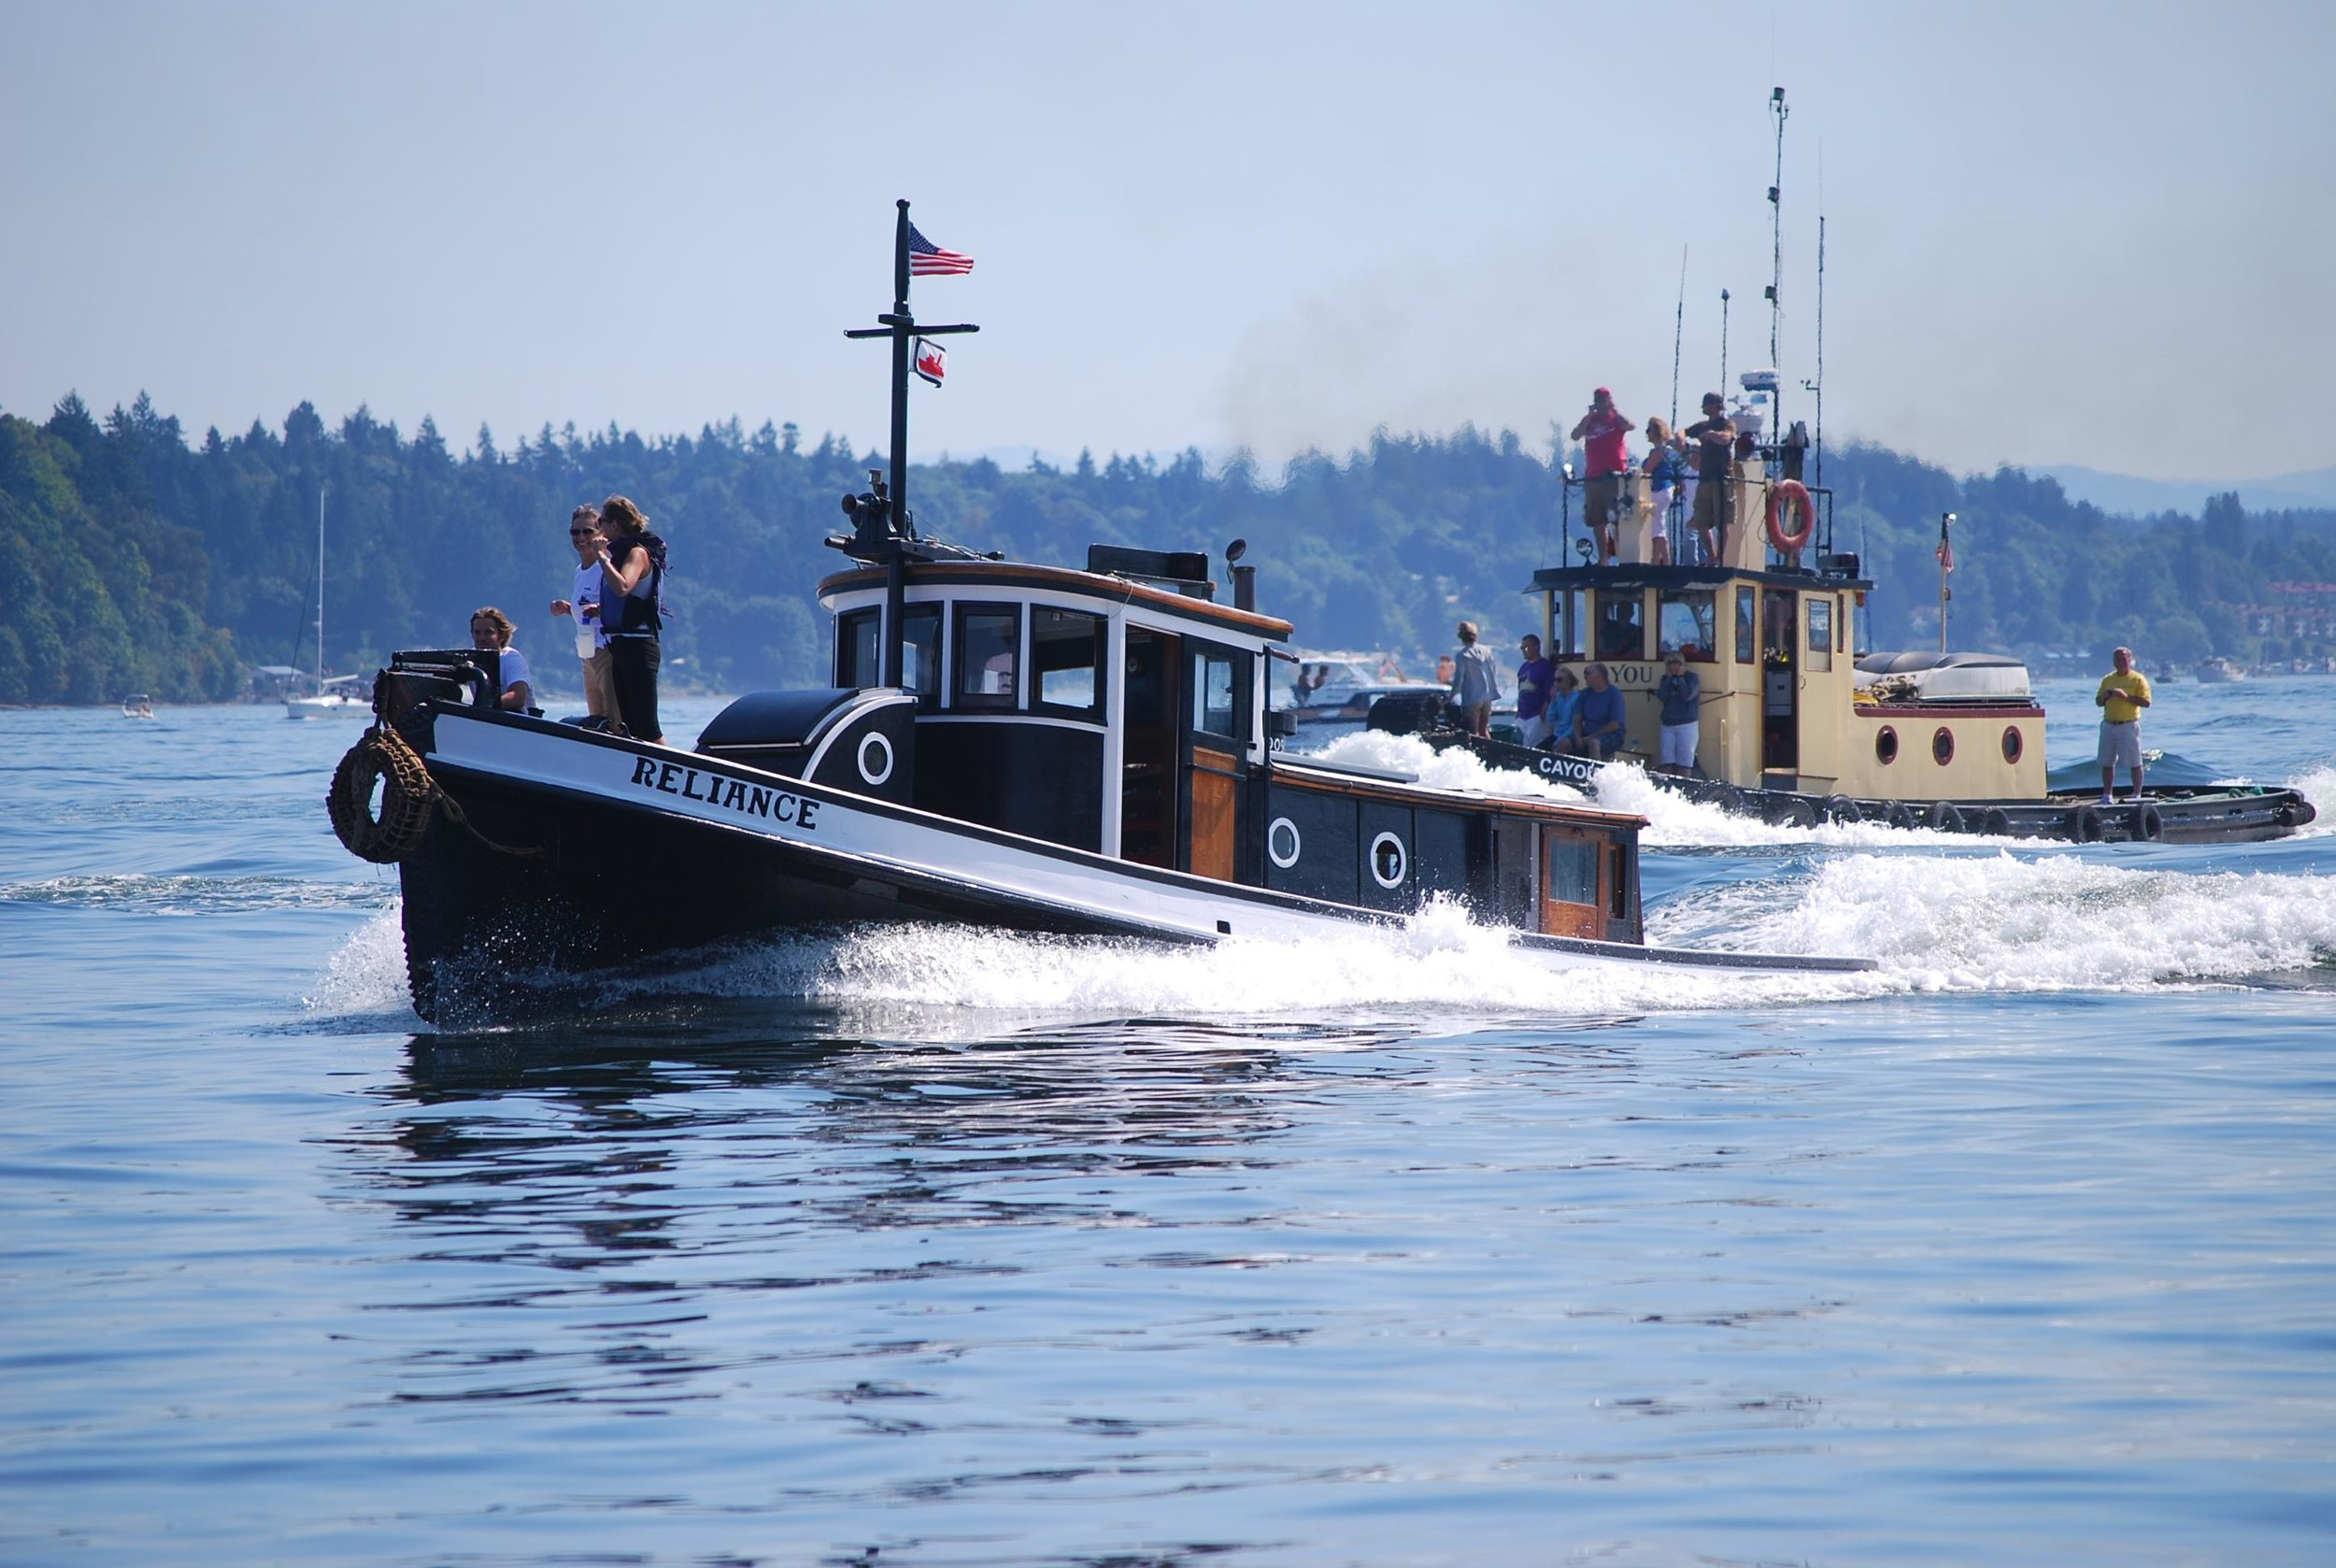 Tug RELIANCE ahead of Tug Cayou at Olympia Harbor Days 2011. Photo courtesy of Karla Fowler